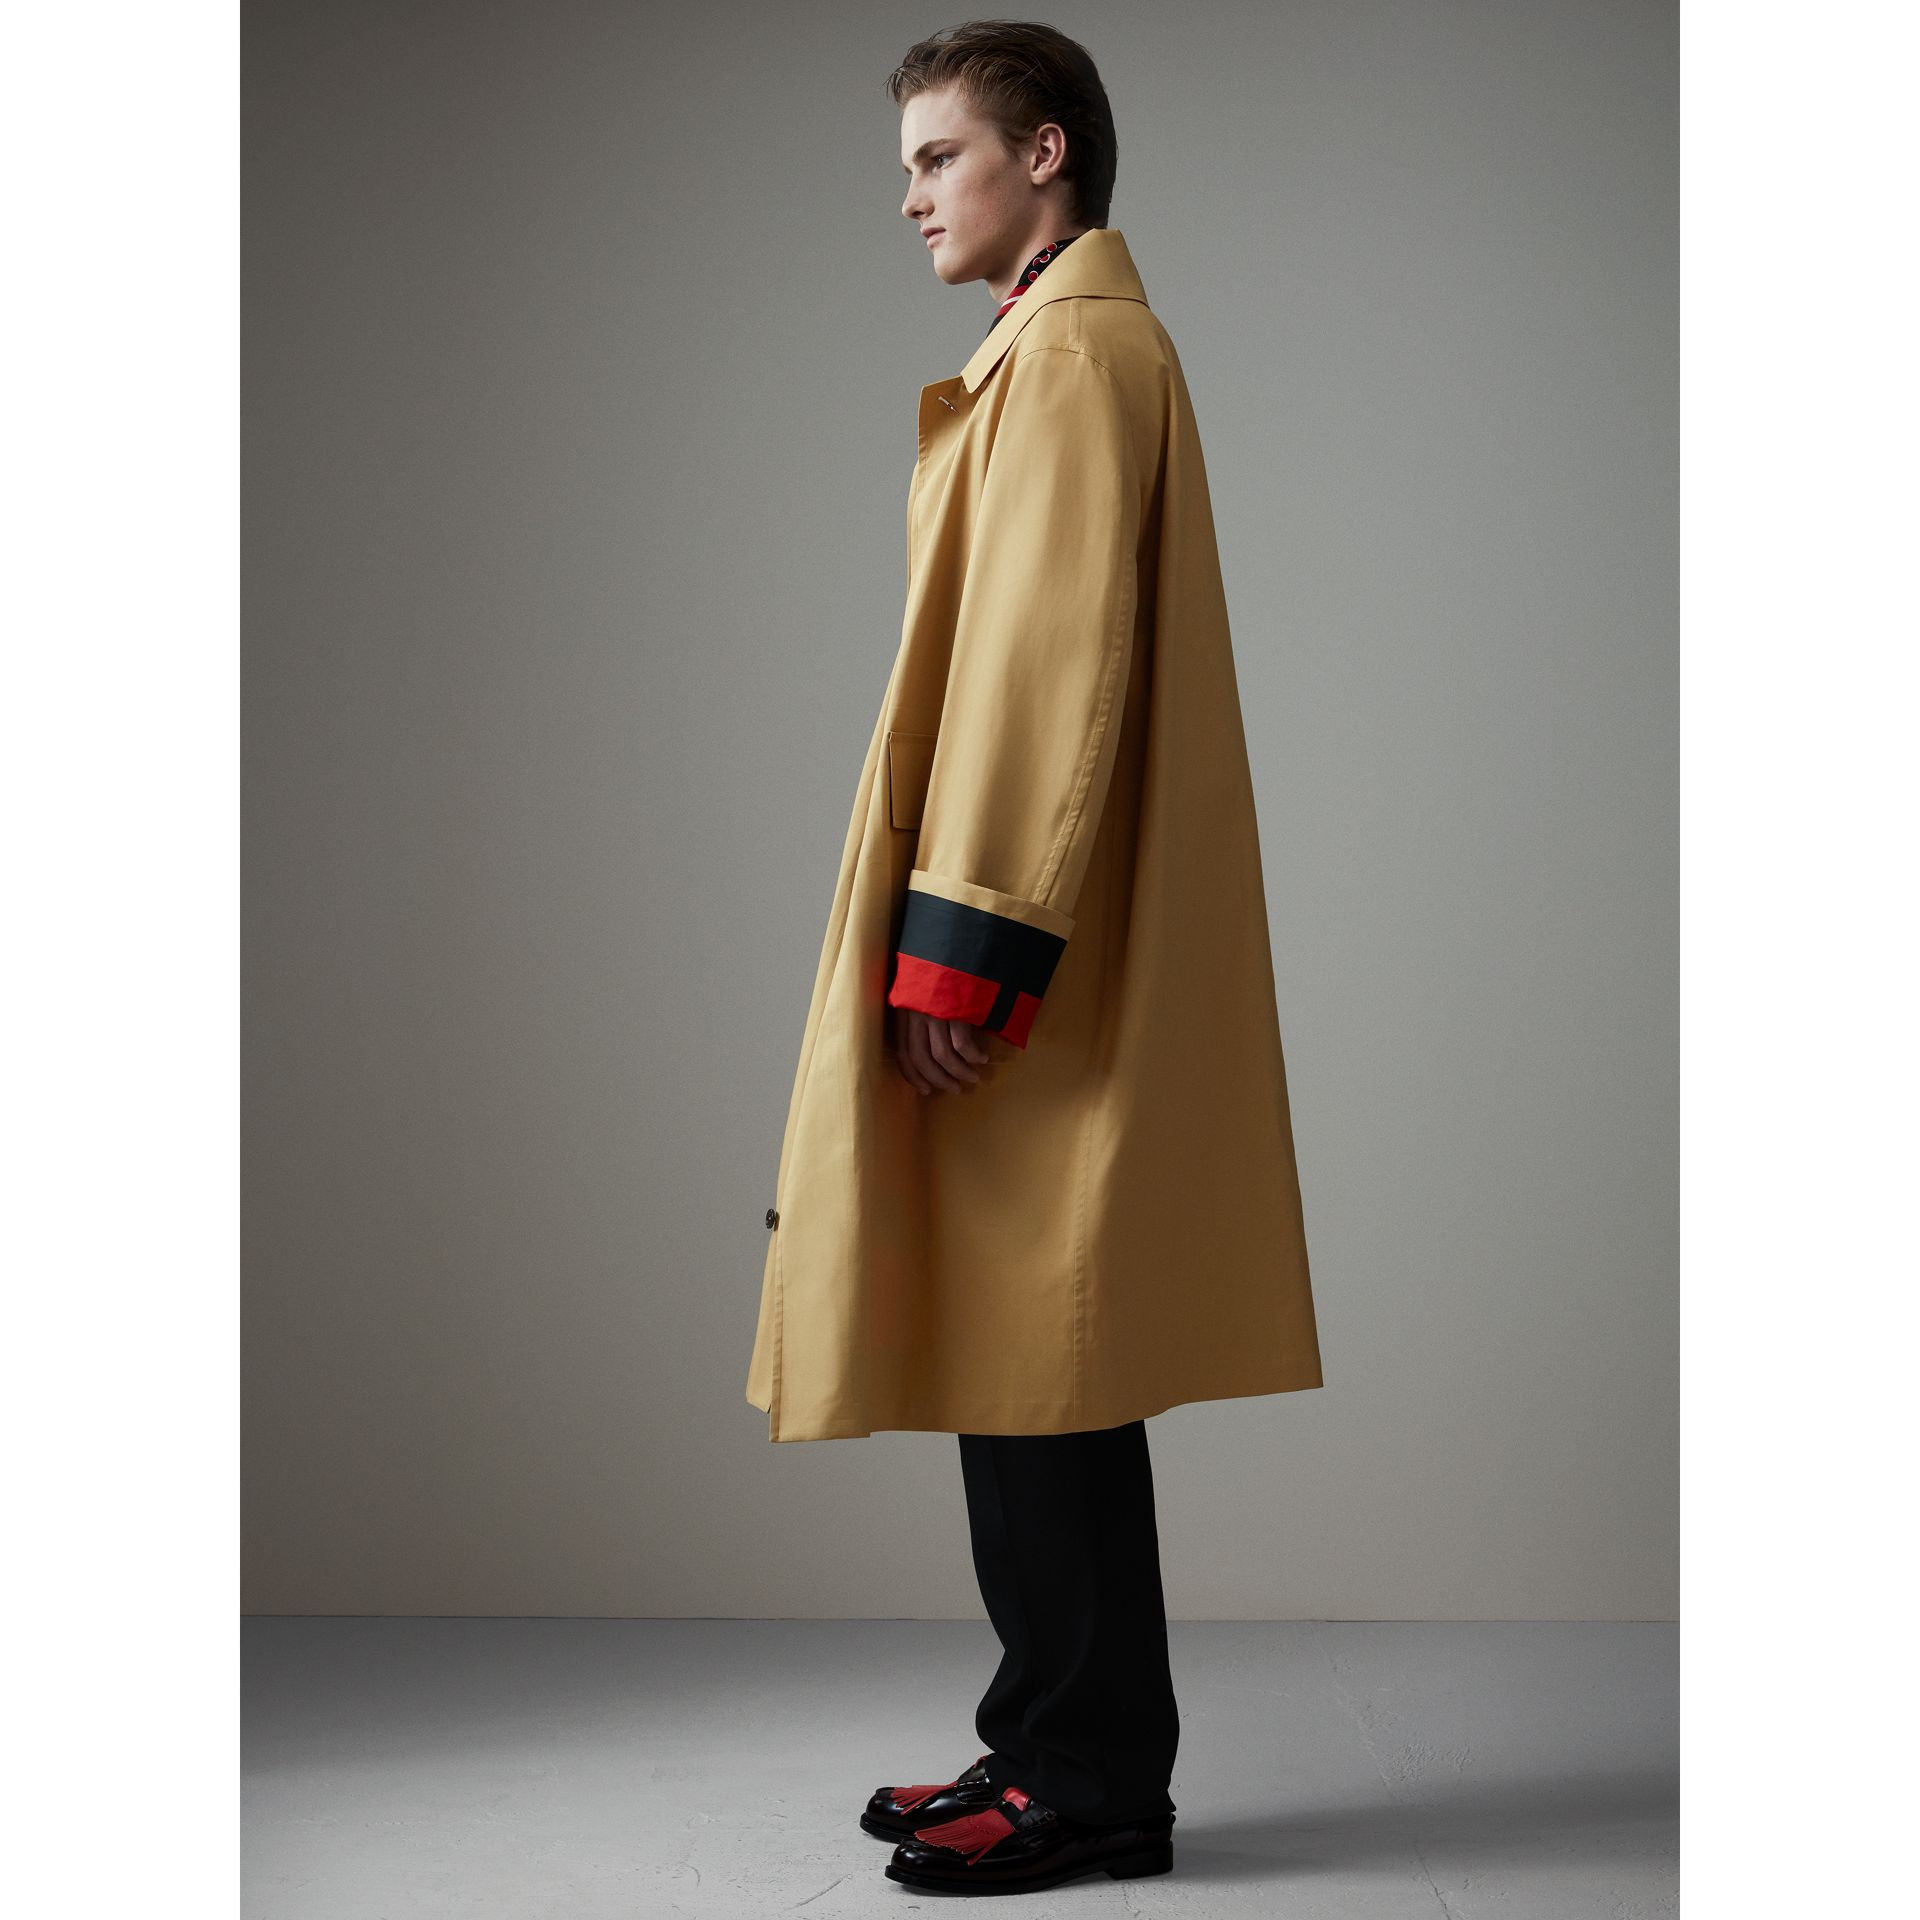 Bonded Cotton Oversized Seam-sealed Car Coat in Beige/red - Men | Burberry - gallery image 5